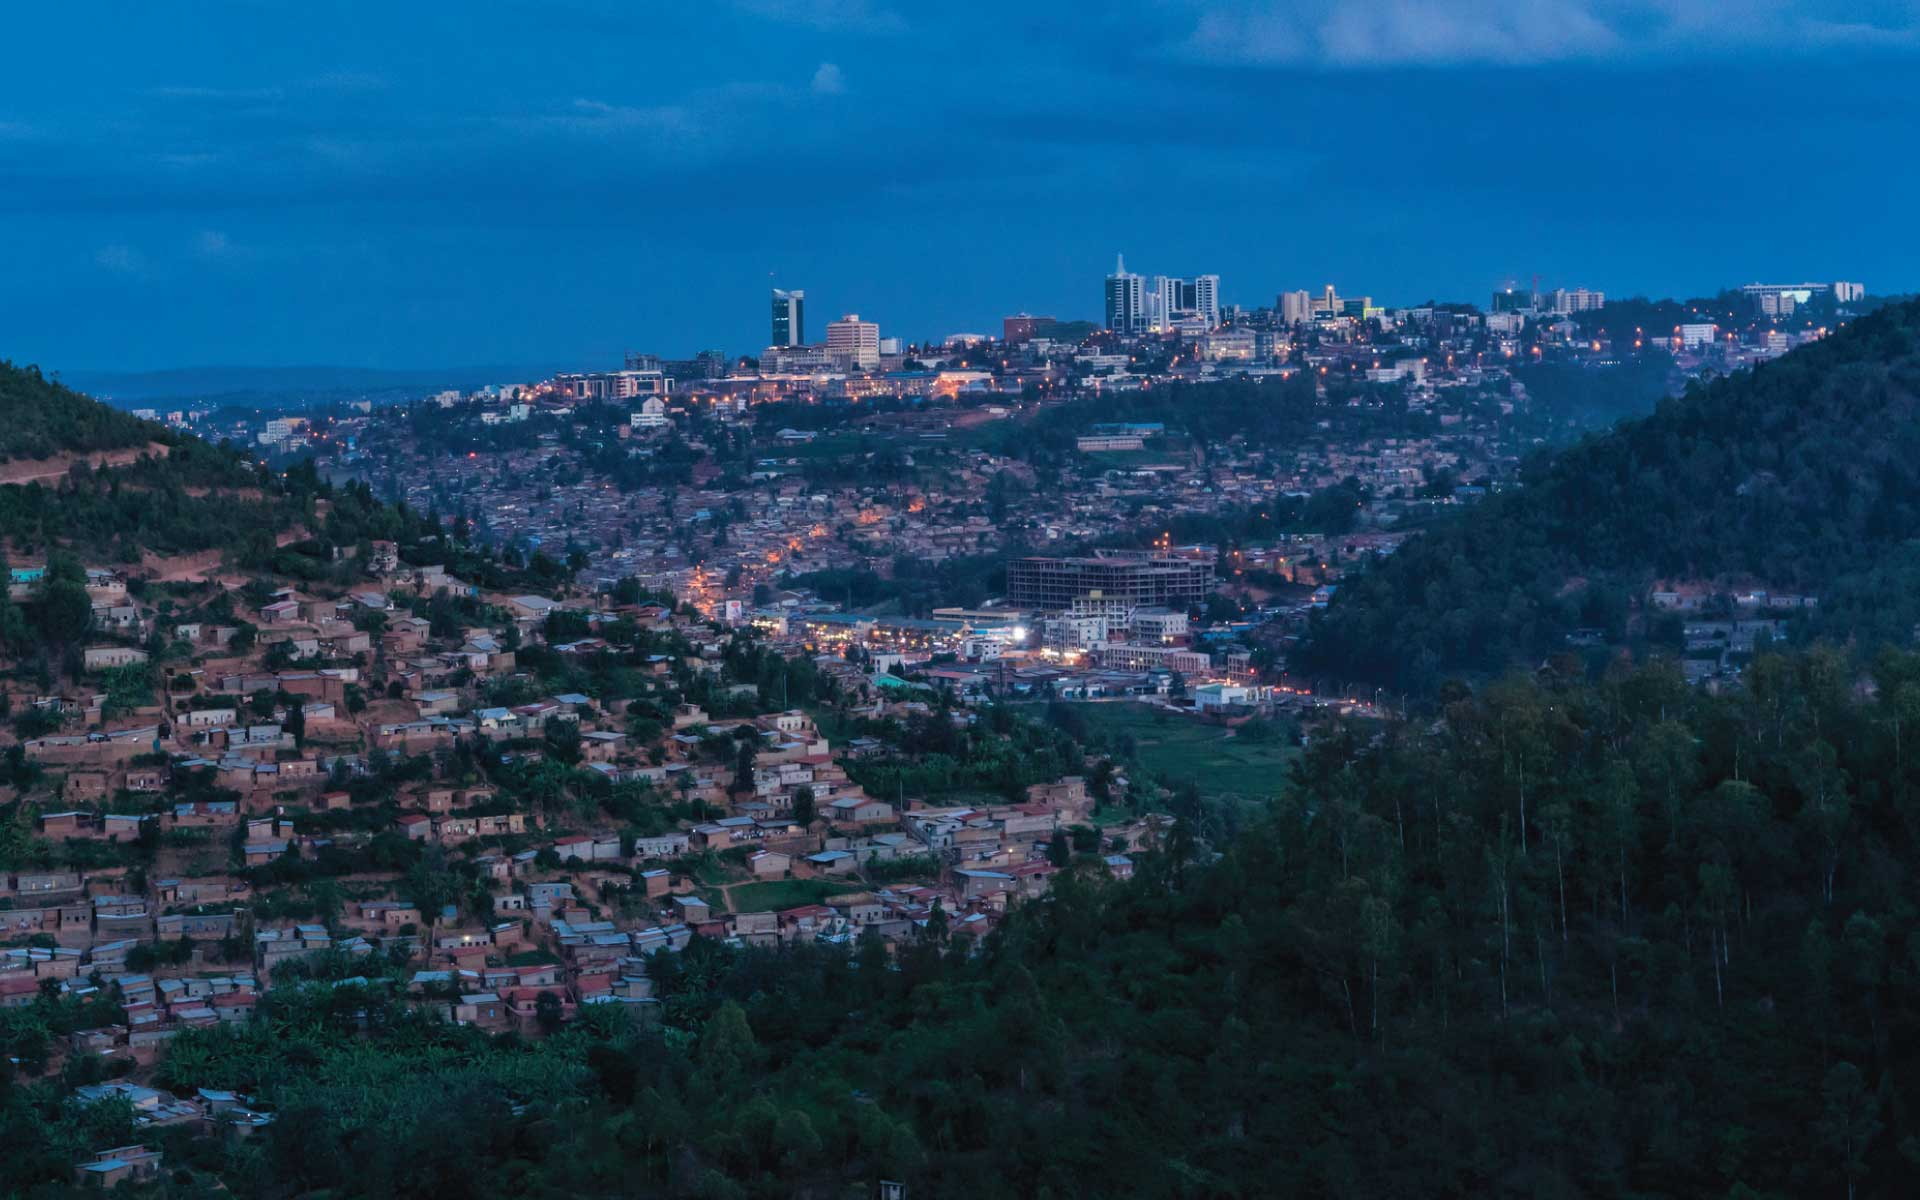 Kigali City Travel Guide - What to do in Rwanda